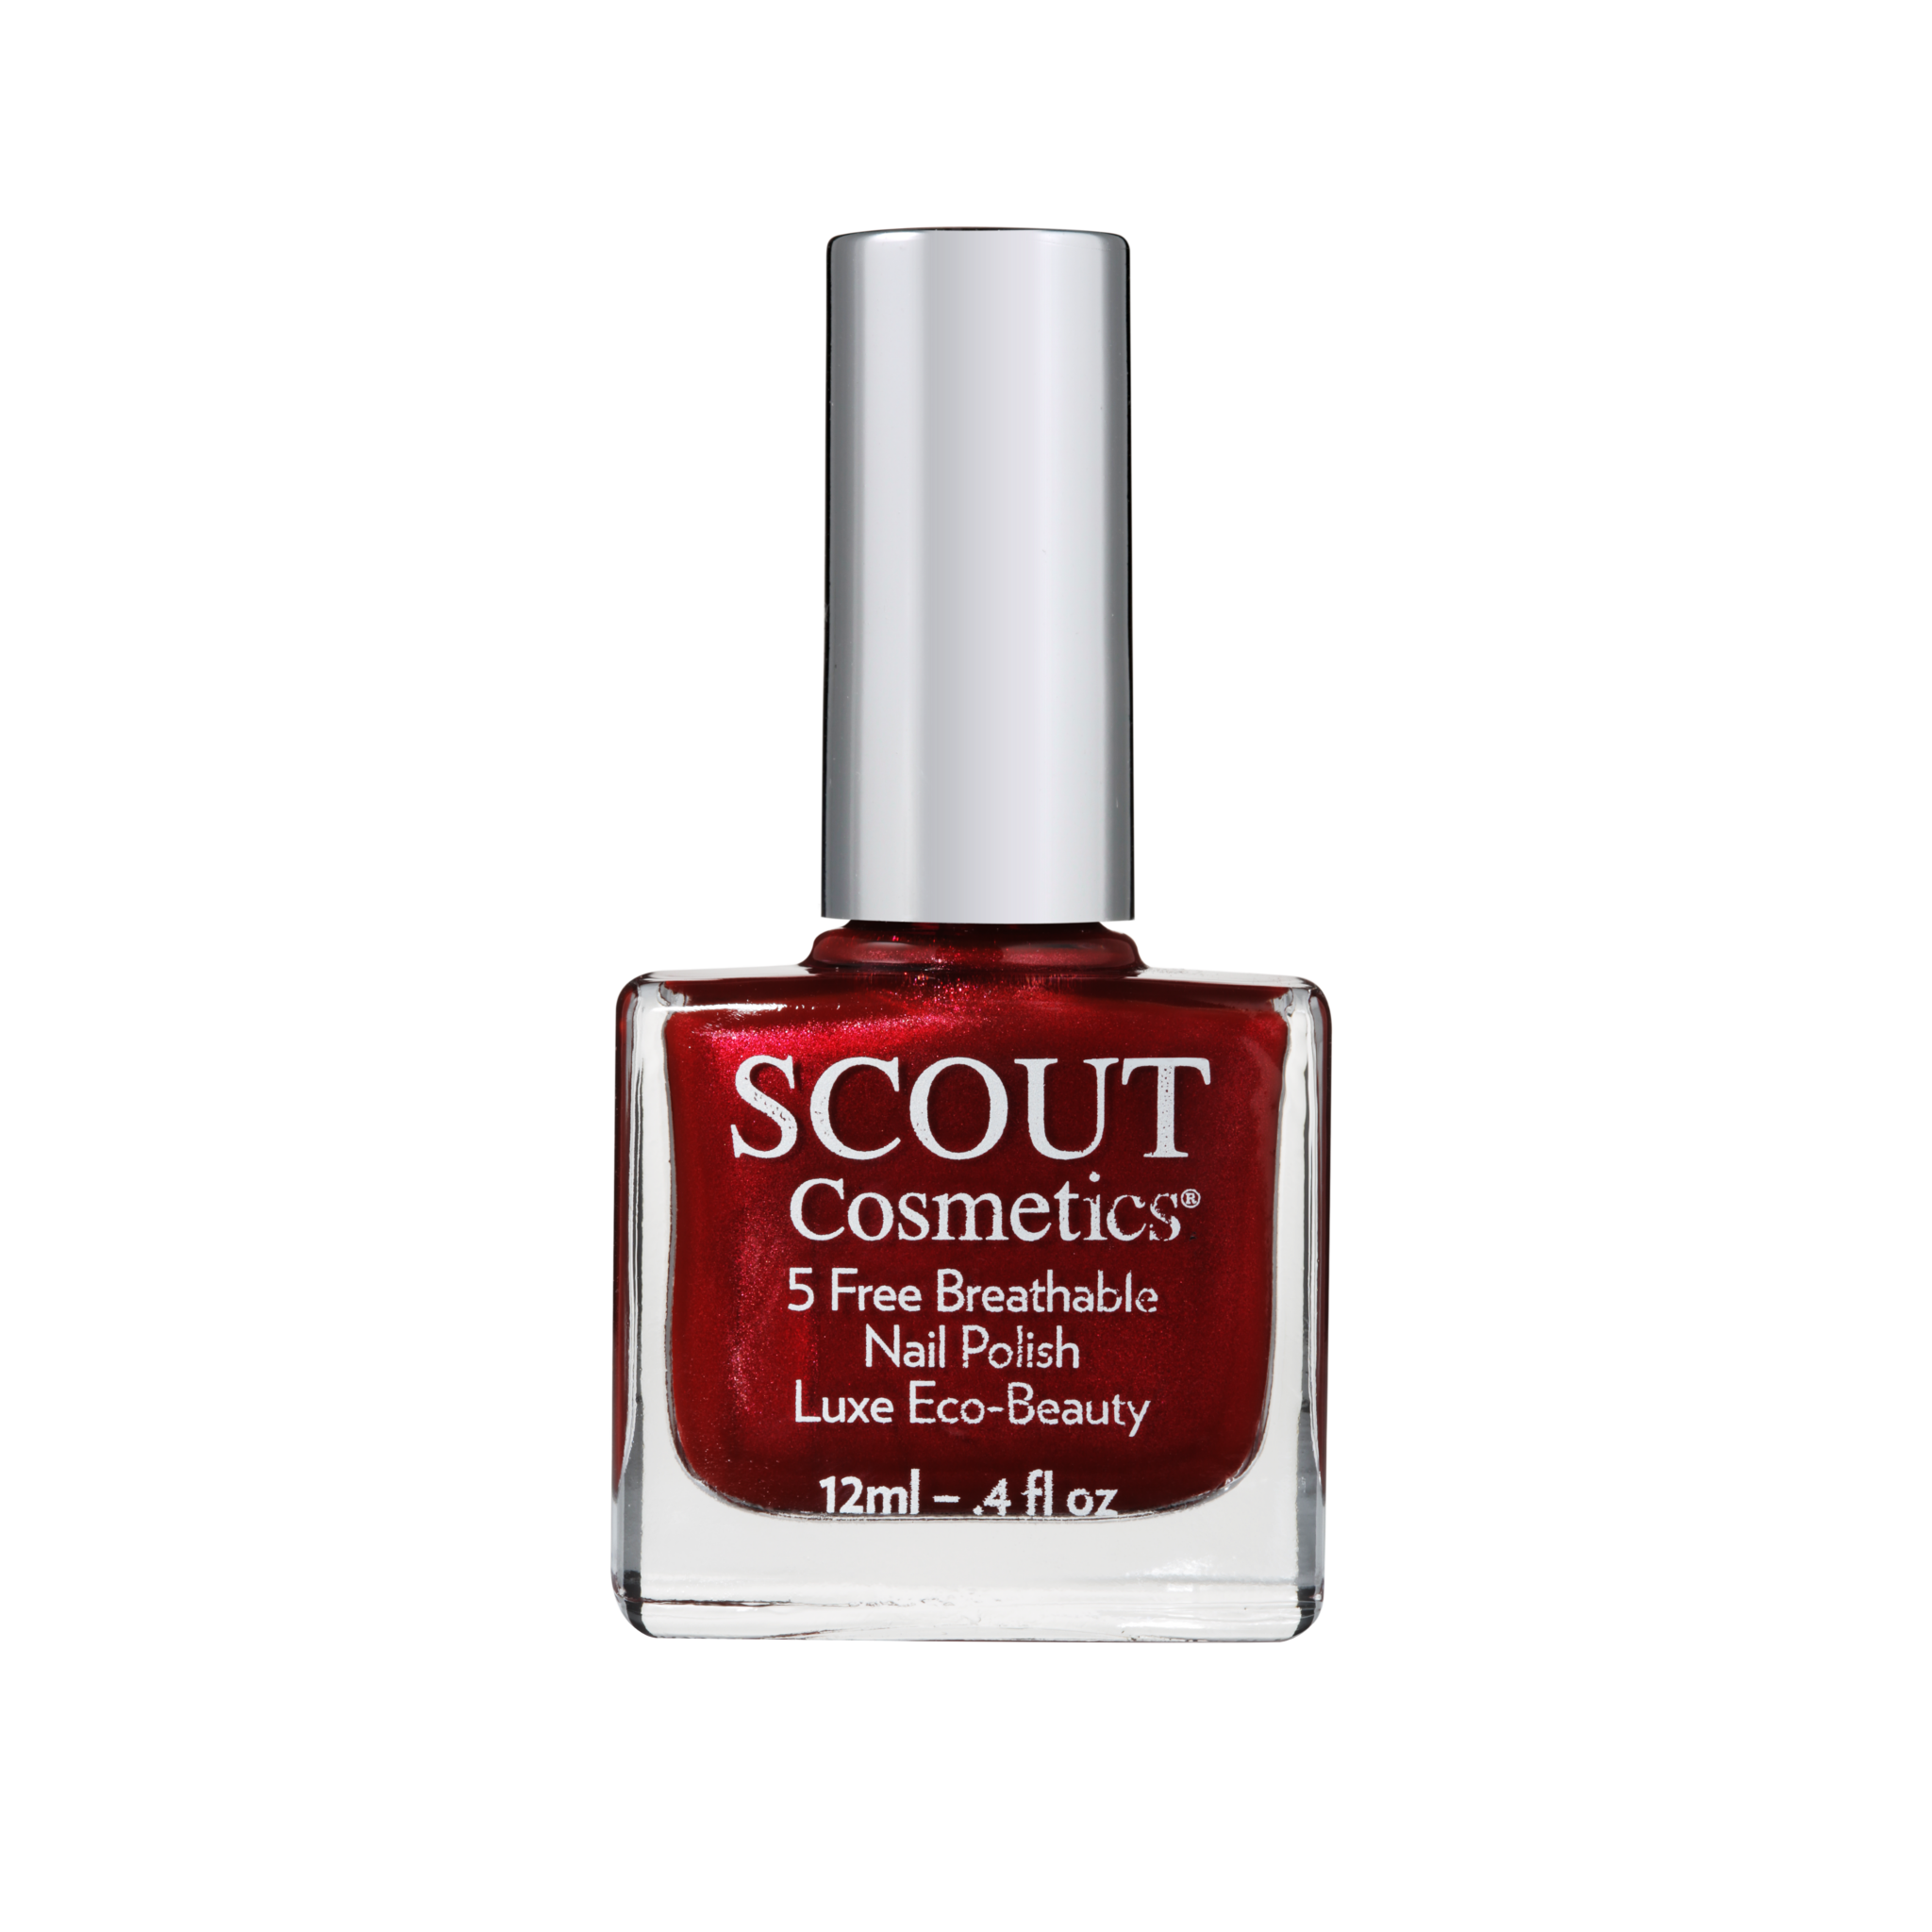 SCOUT Cosmetics Nail Polish - Shake It